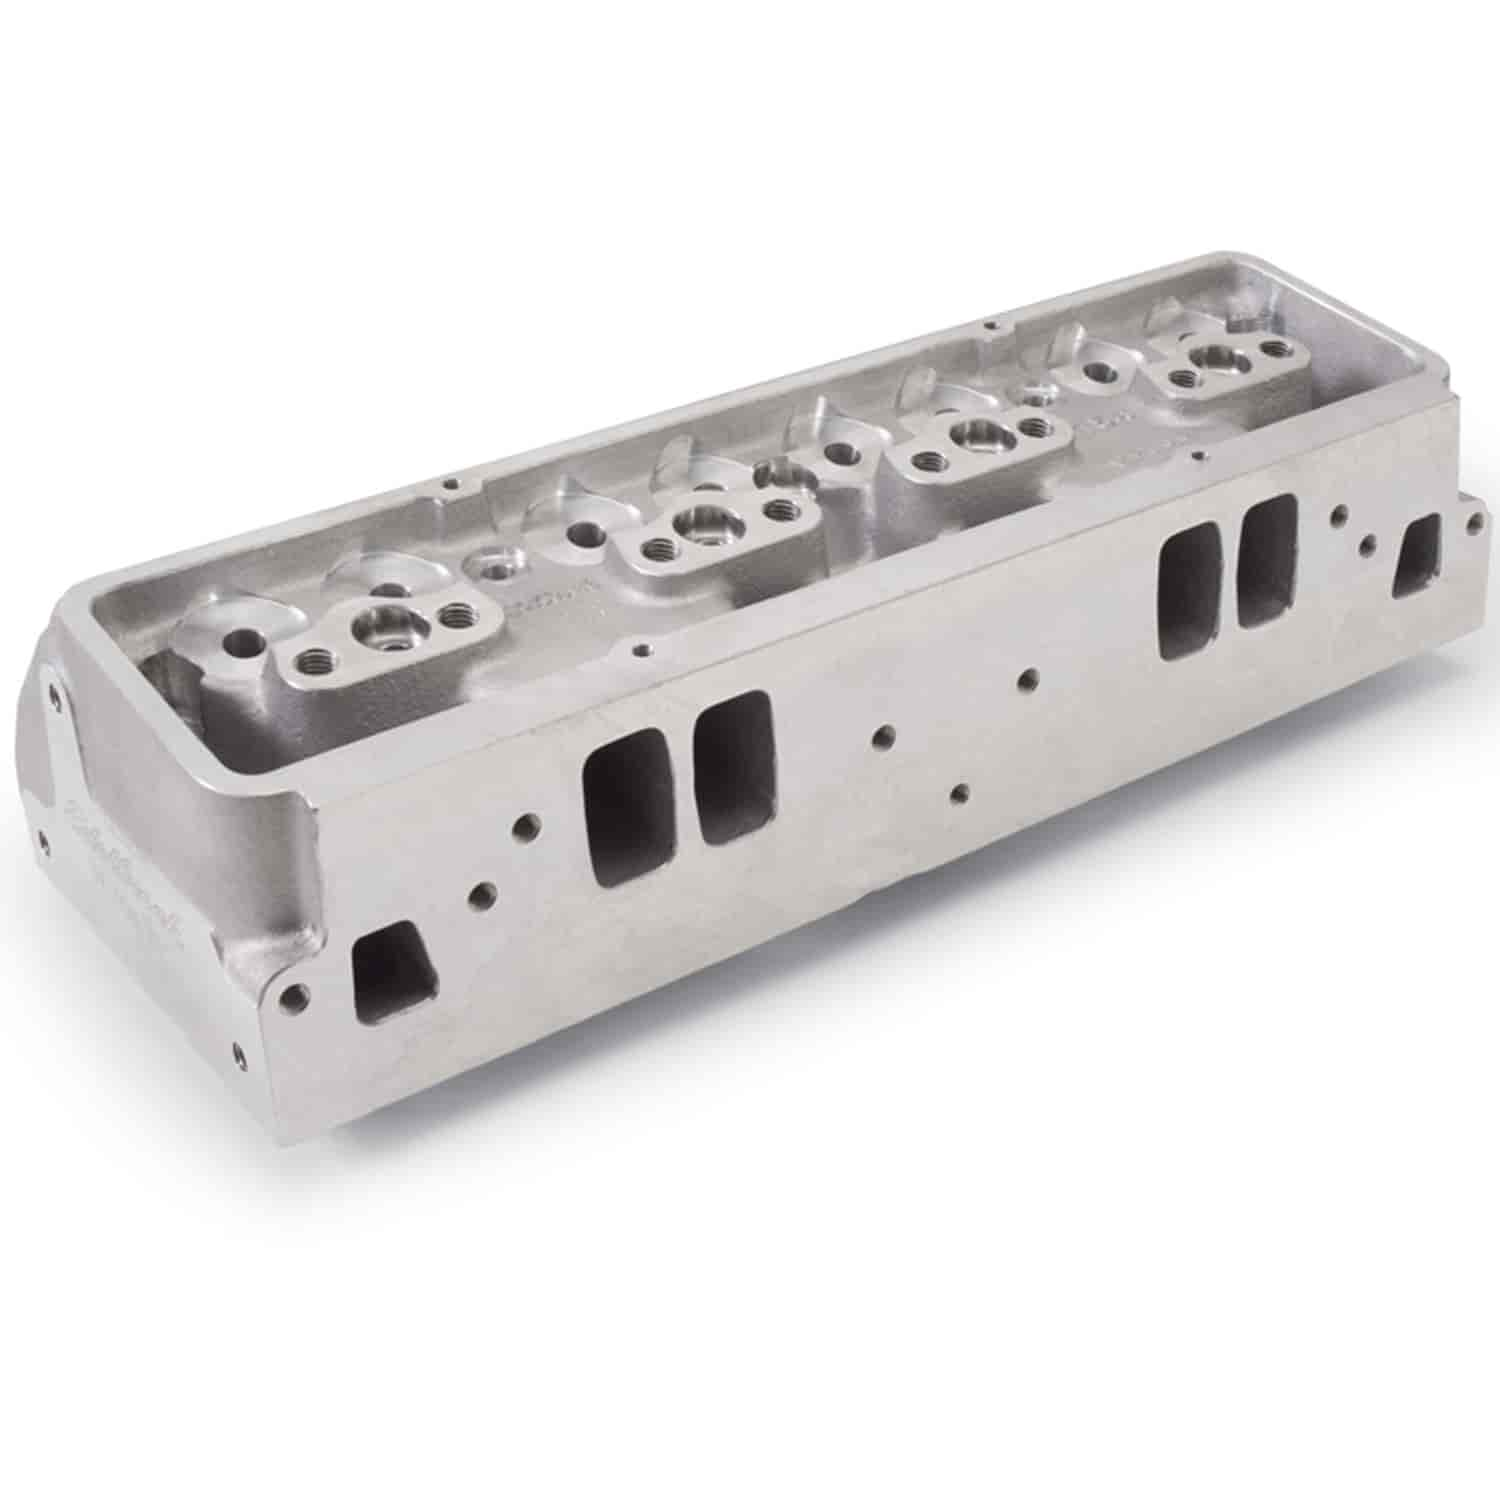 Edelbrock 775469 - Edelbrock Pro-Port Raw & Semi-Finished Heads For Small Block Chevy